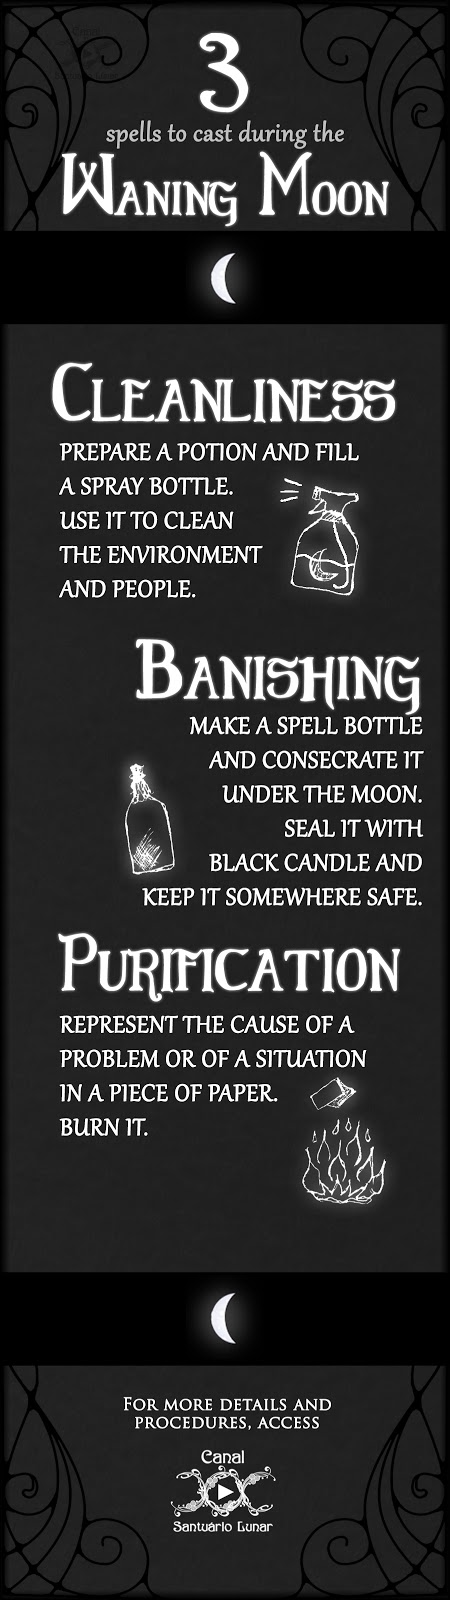 3 spells for the Waning Moon | Magic, Witchcraft, Paganism, Wicca